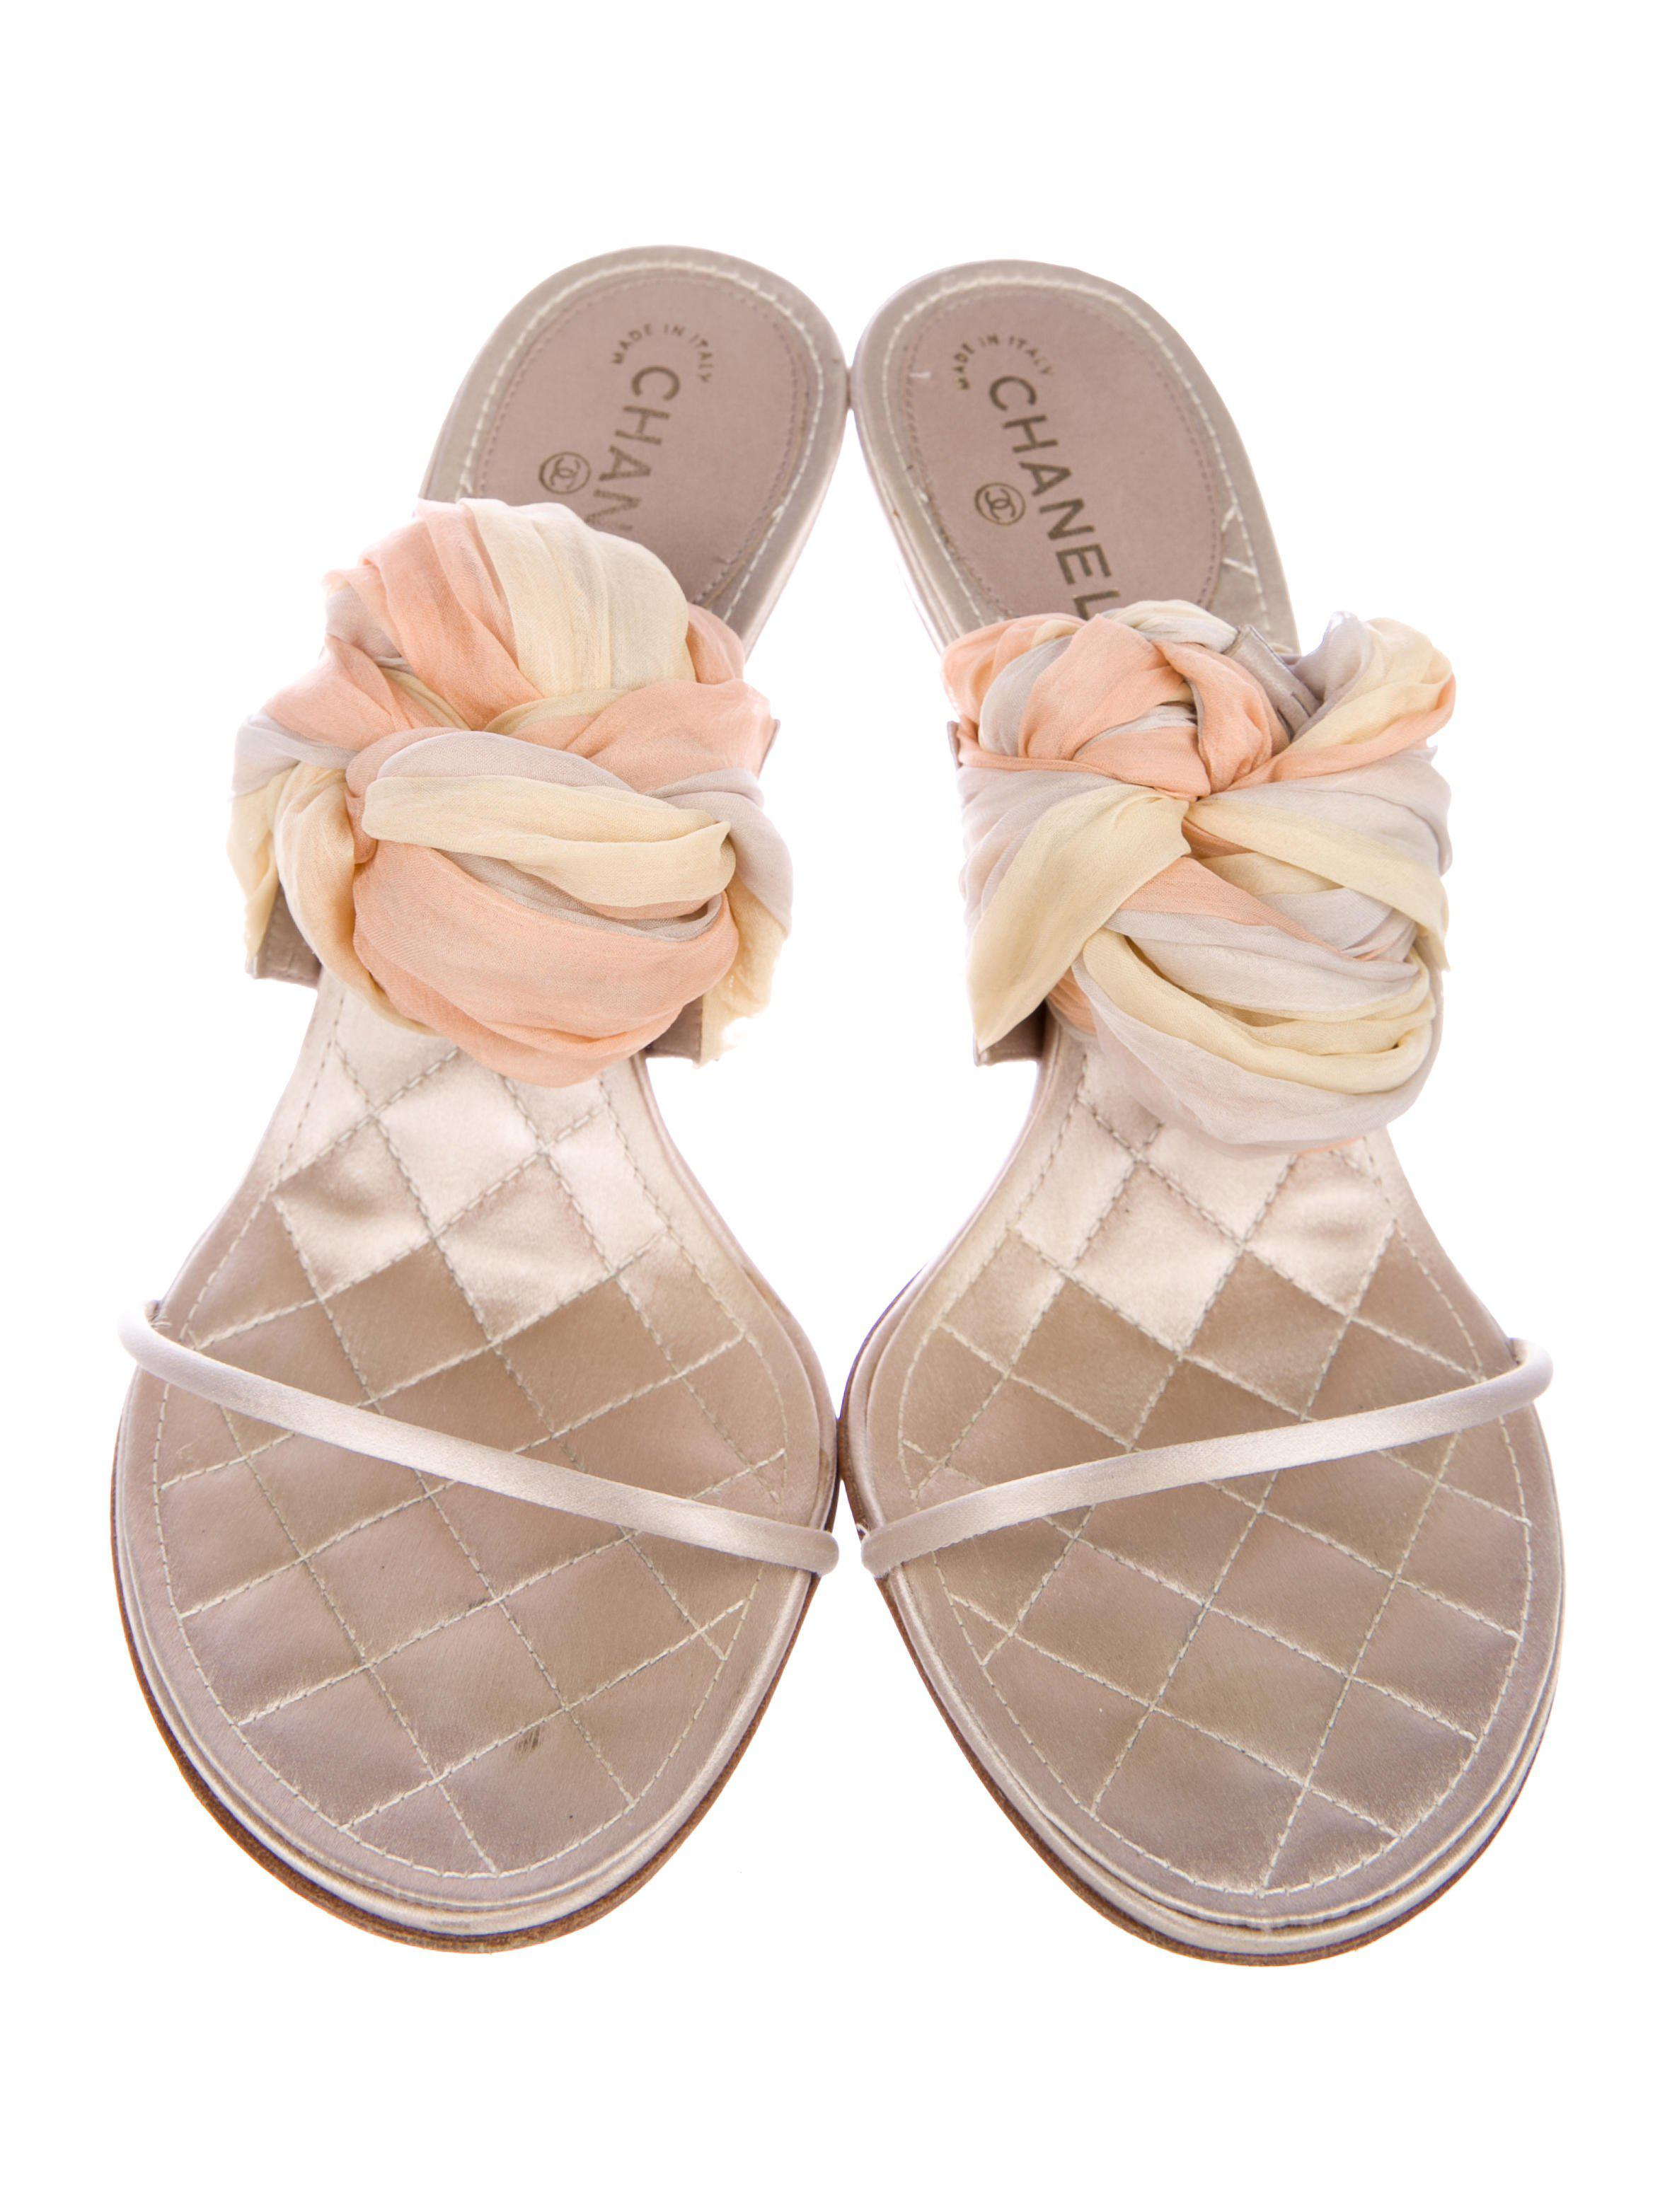 59d97417e625 Lyst - Chanel Satin Lace-up Sandals Beige in Yellow